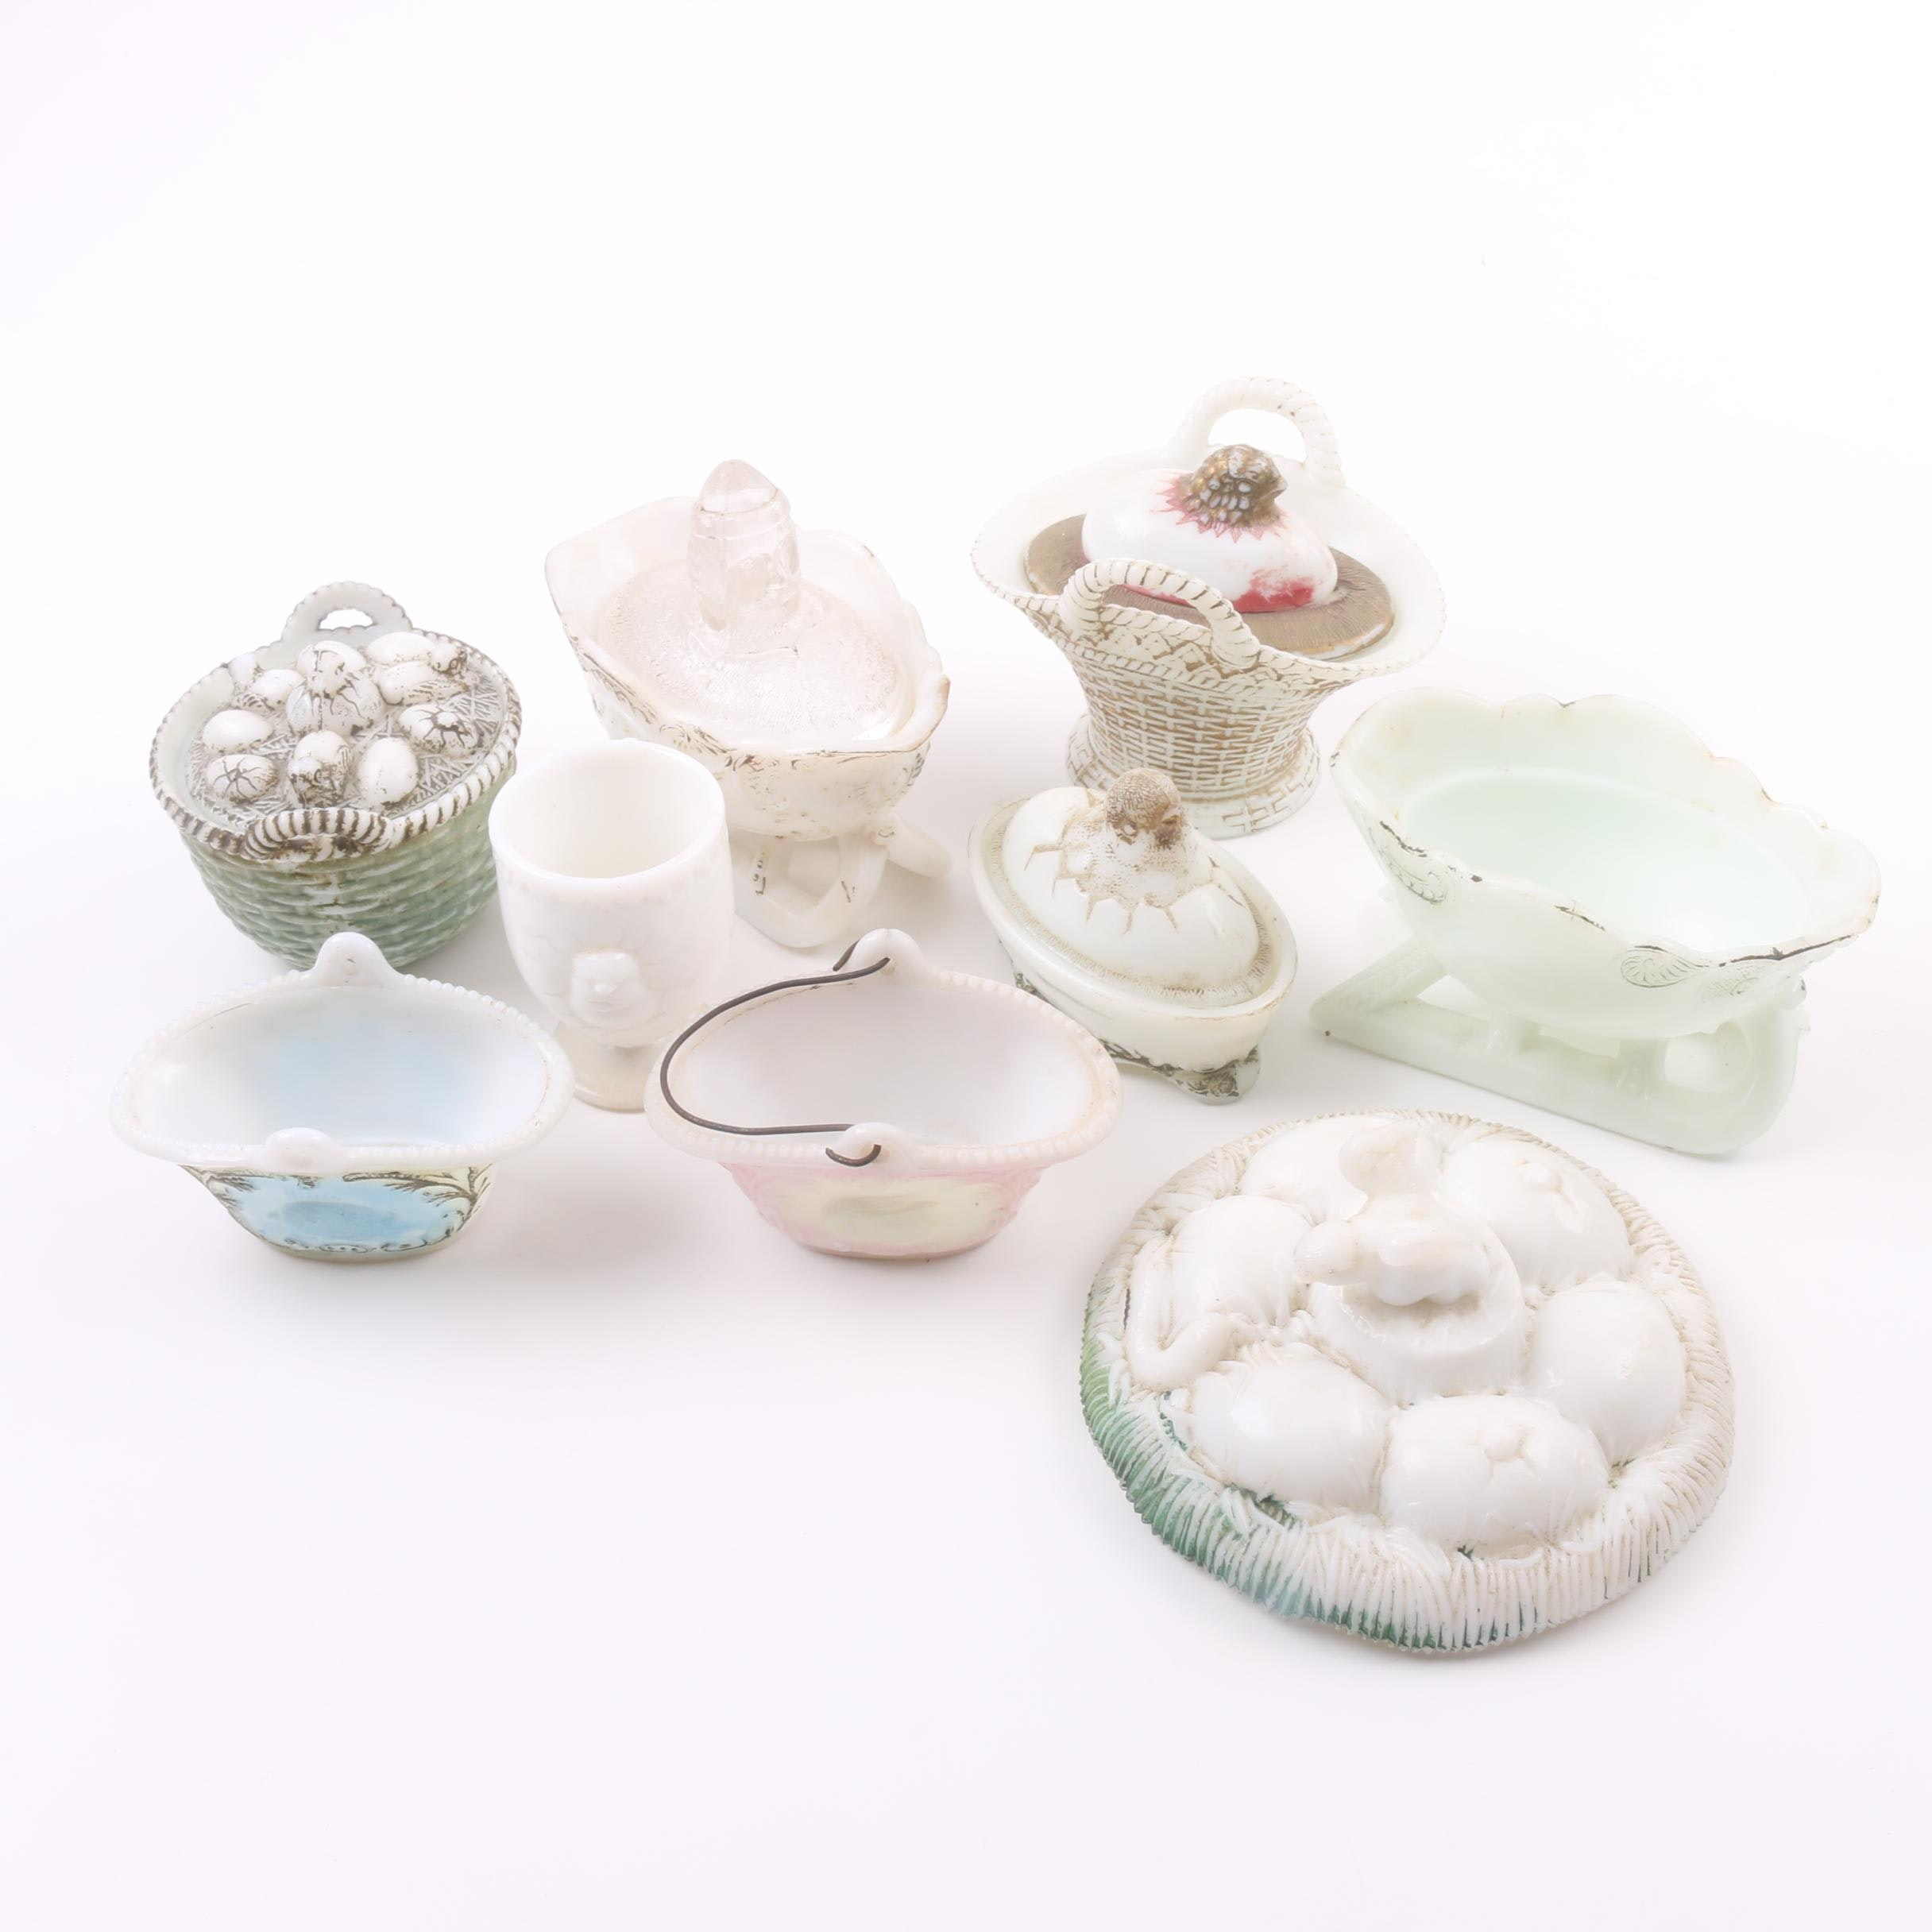 Antique and Vintage Milk Glass Baskets, Sleighs and Trinket Boxes